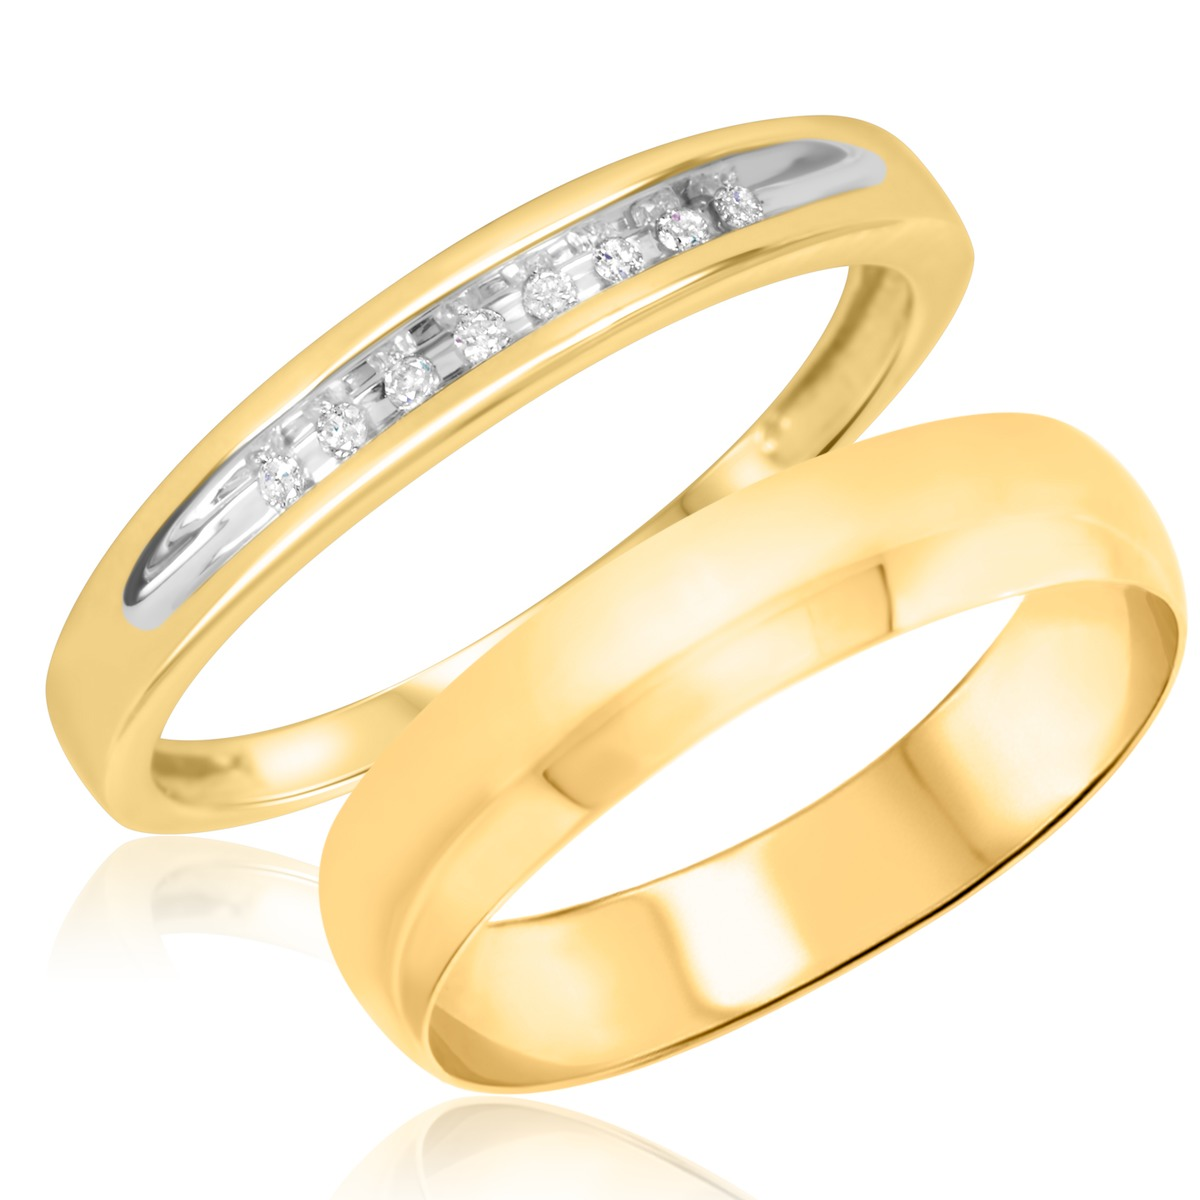 1/20 Carat T.W. Round Cut Diamond His and Hers Wedding Band Set 10K Yellow Gold